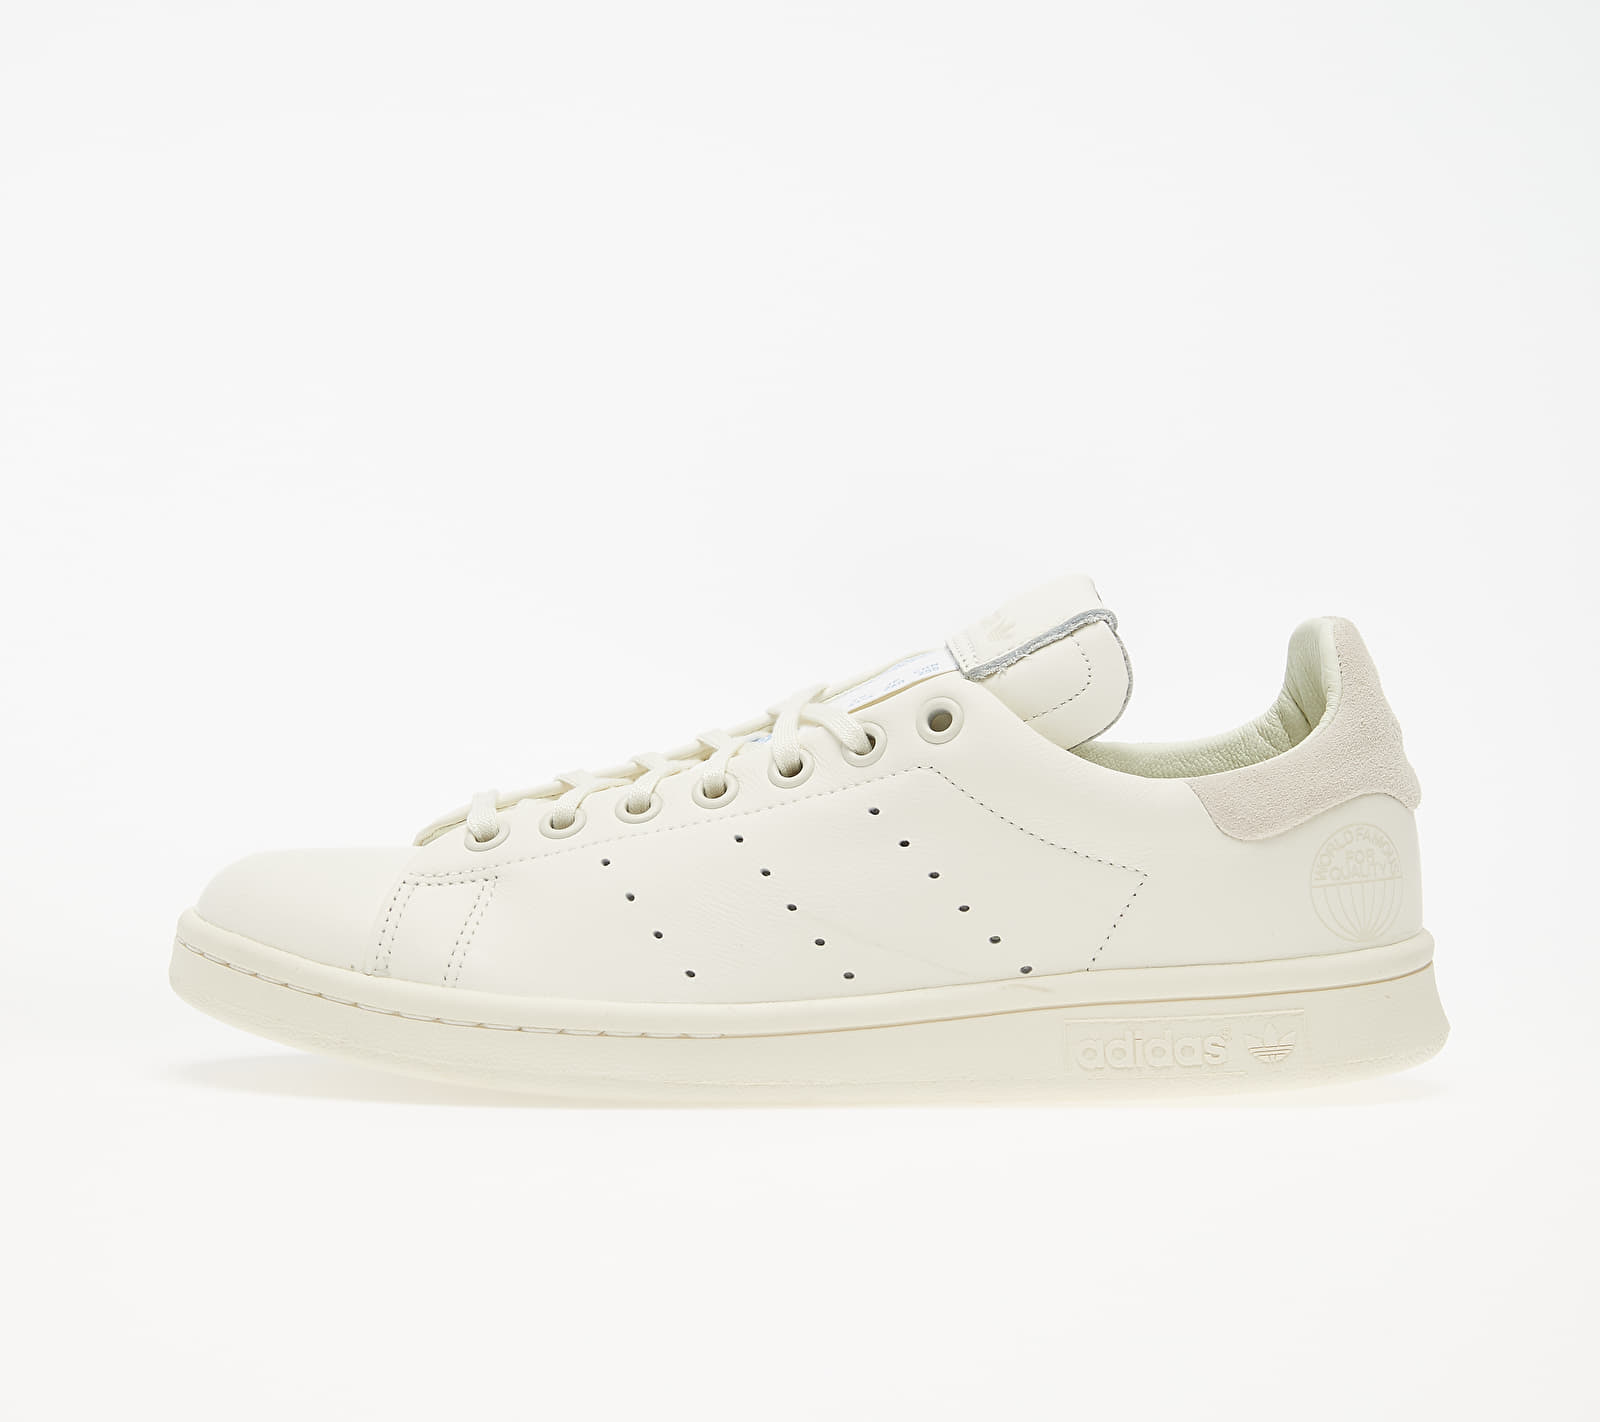 adidas Stan Smith Recon Off White/ Off White/ Off White EUR 44